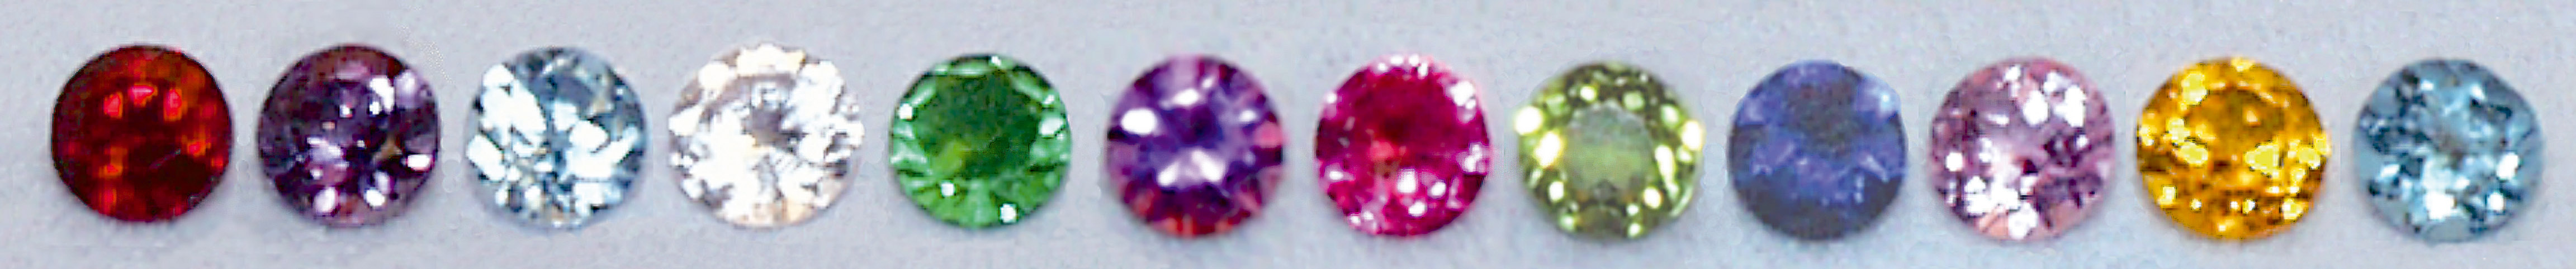 FB416/01 Genuine Swarovski Crystals/Foilbacks--Round January 3.7mm